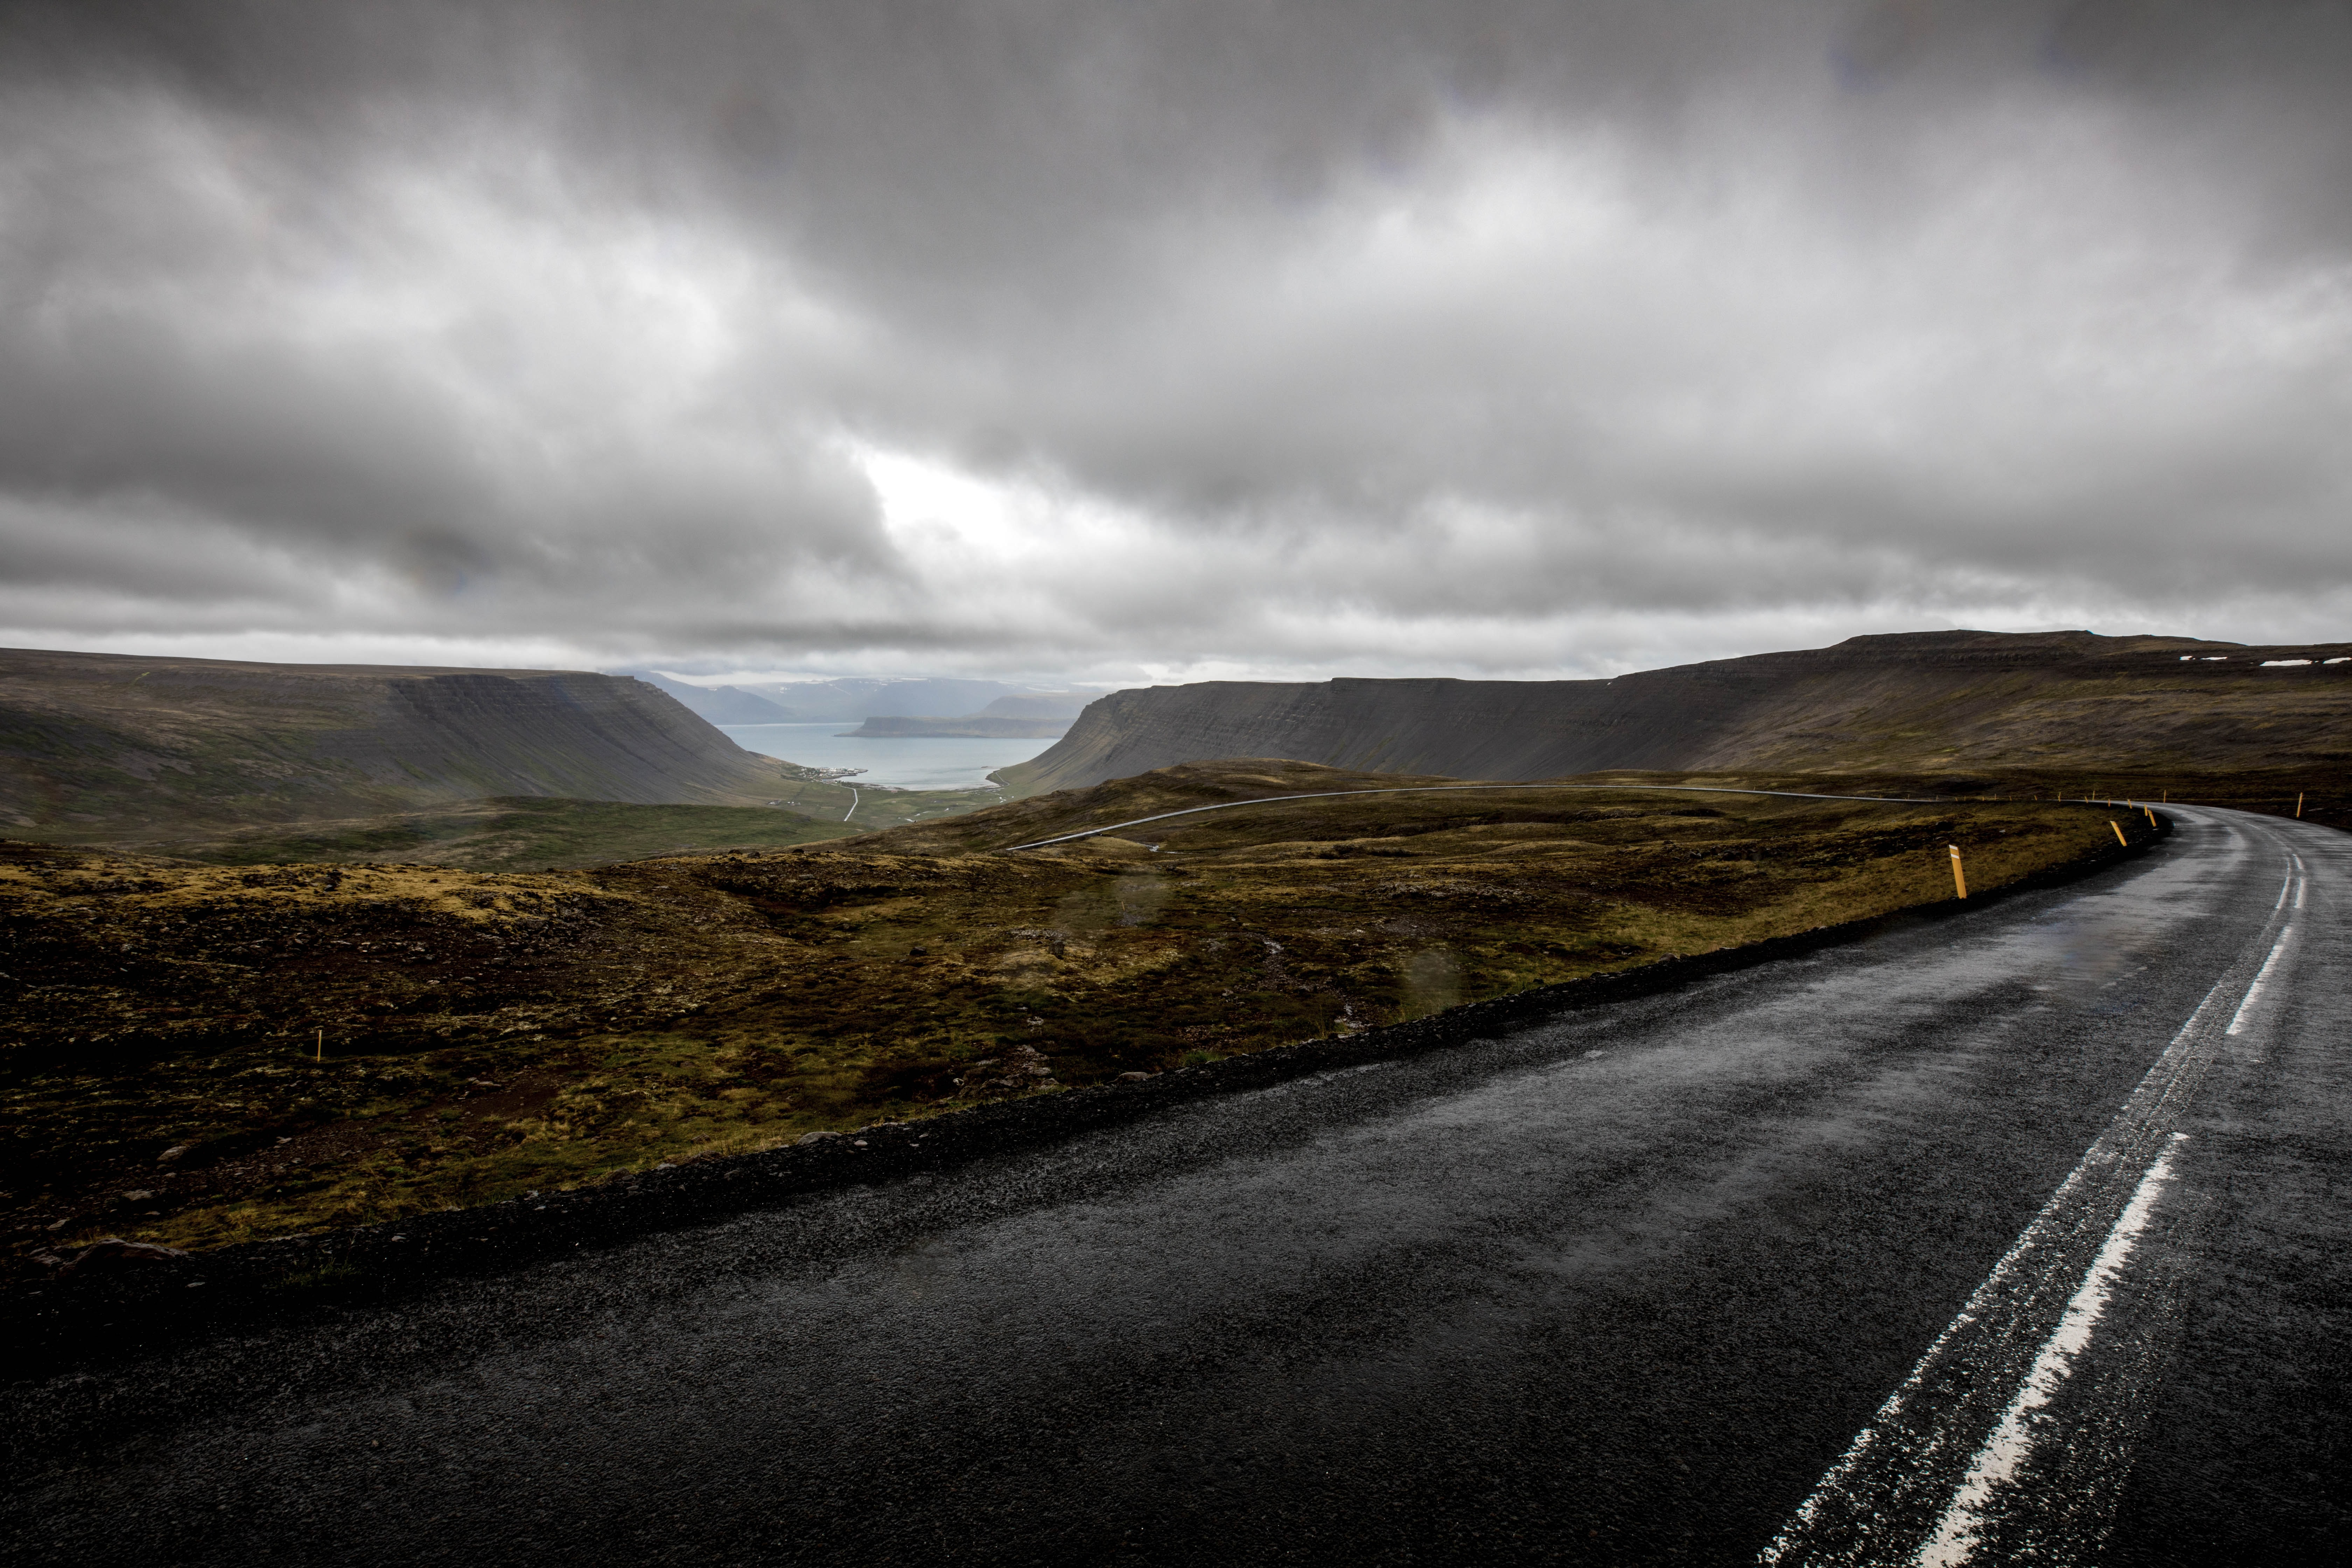 gray asphalt road near mountains under cloudy sky during daytime